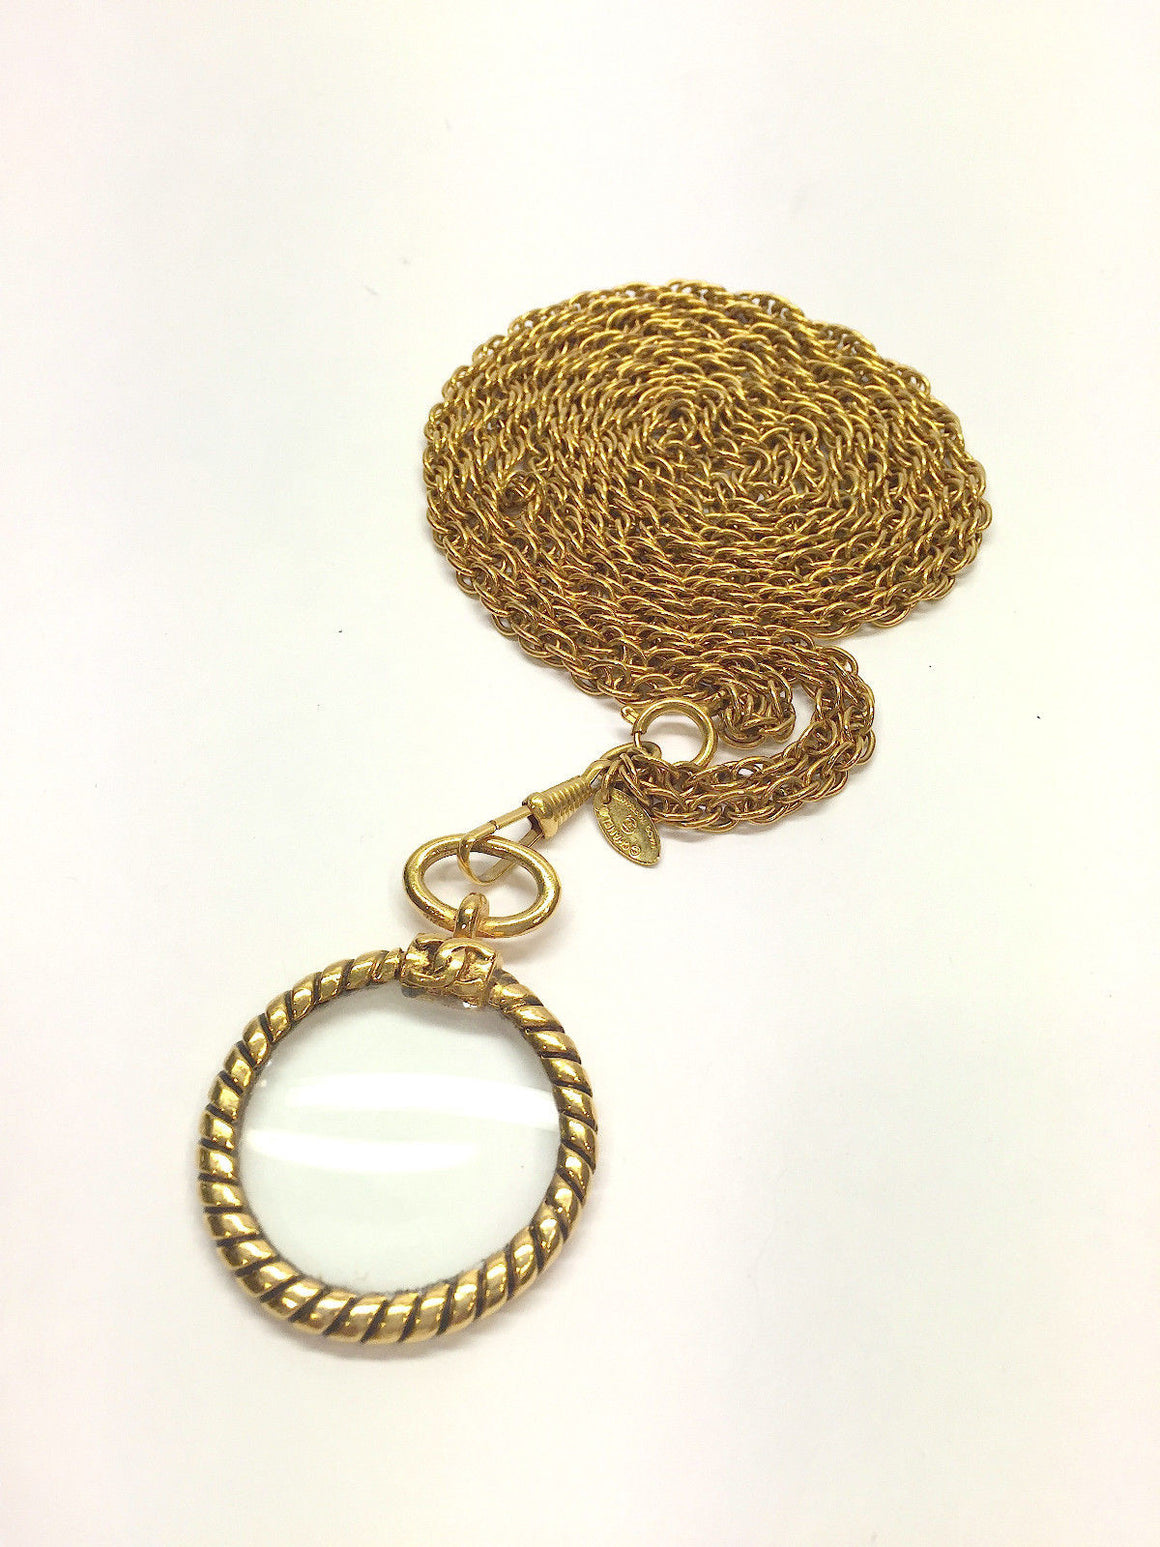 bisbiz.com CHANEL Gilt Metal Double Chain Magnifying Glass/Loupe  Pendant Necklace - Bis Luxury Resale